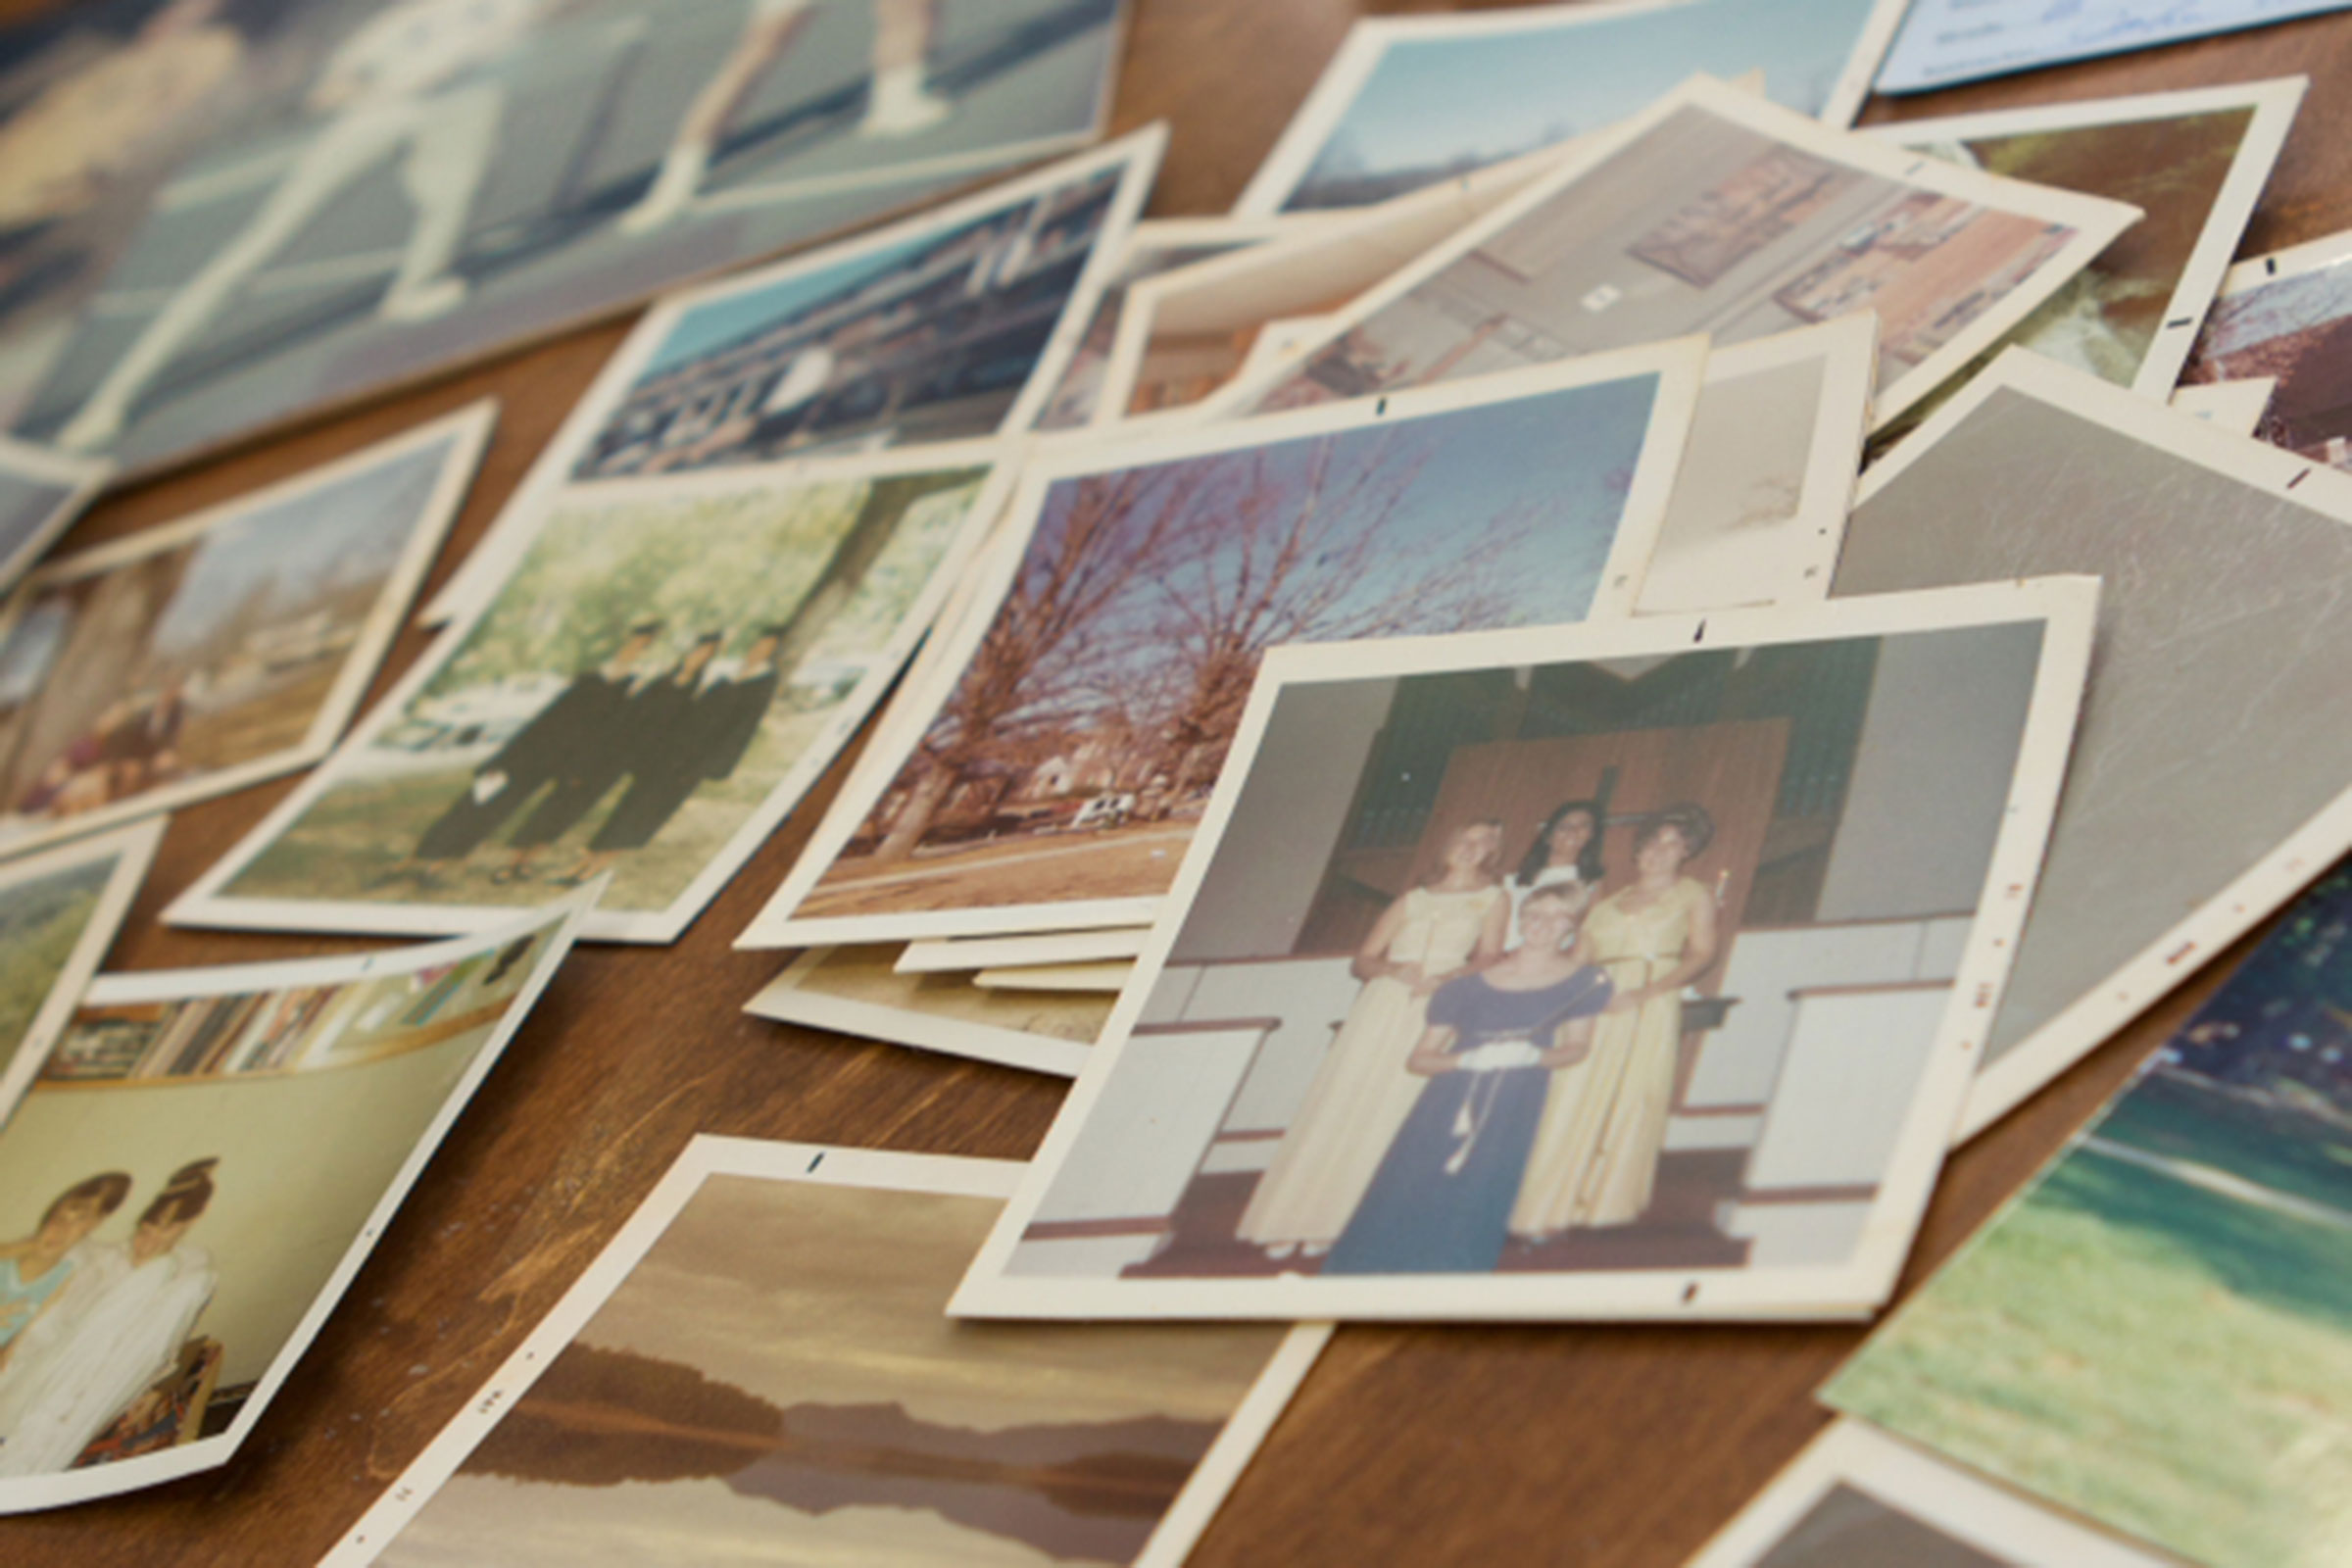 old photos scattered on a table